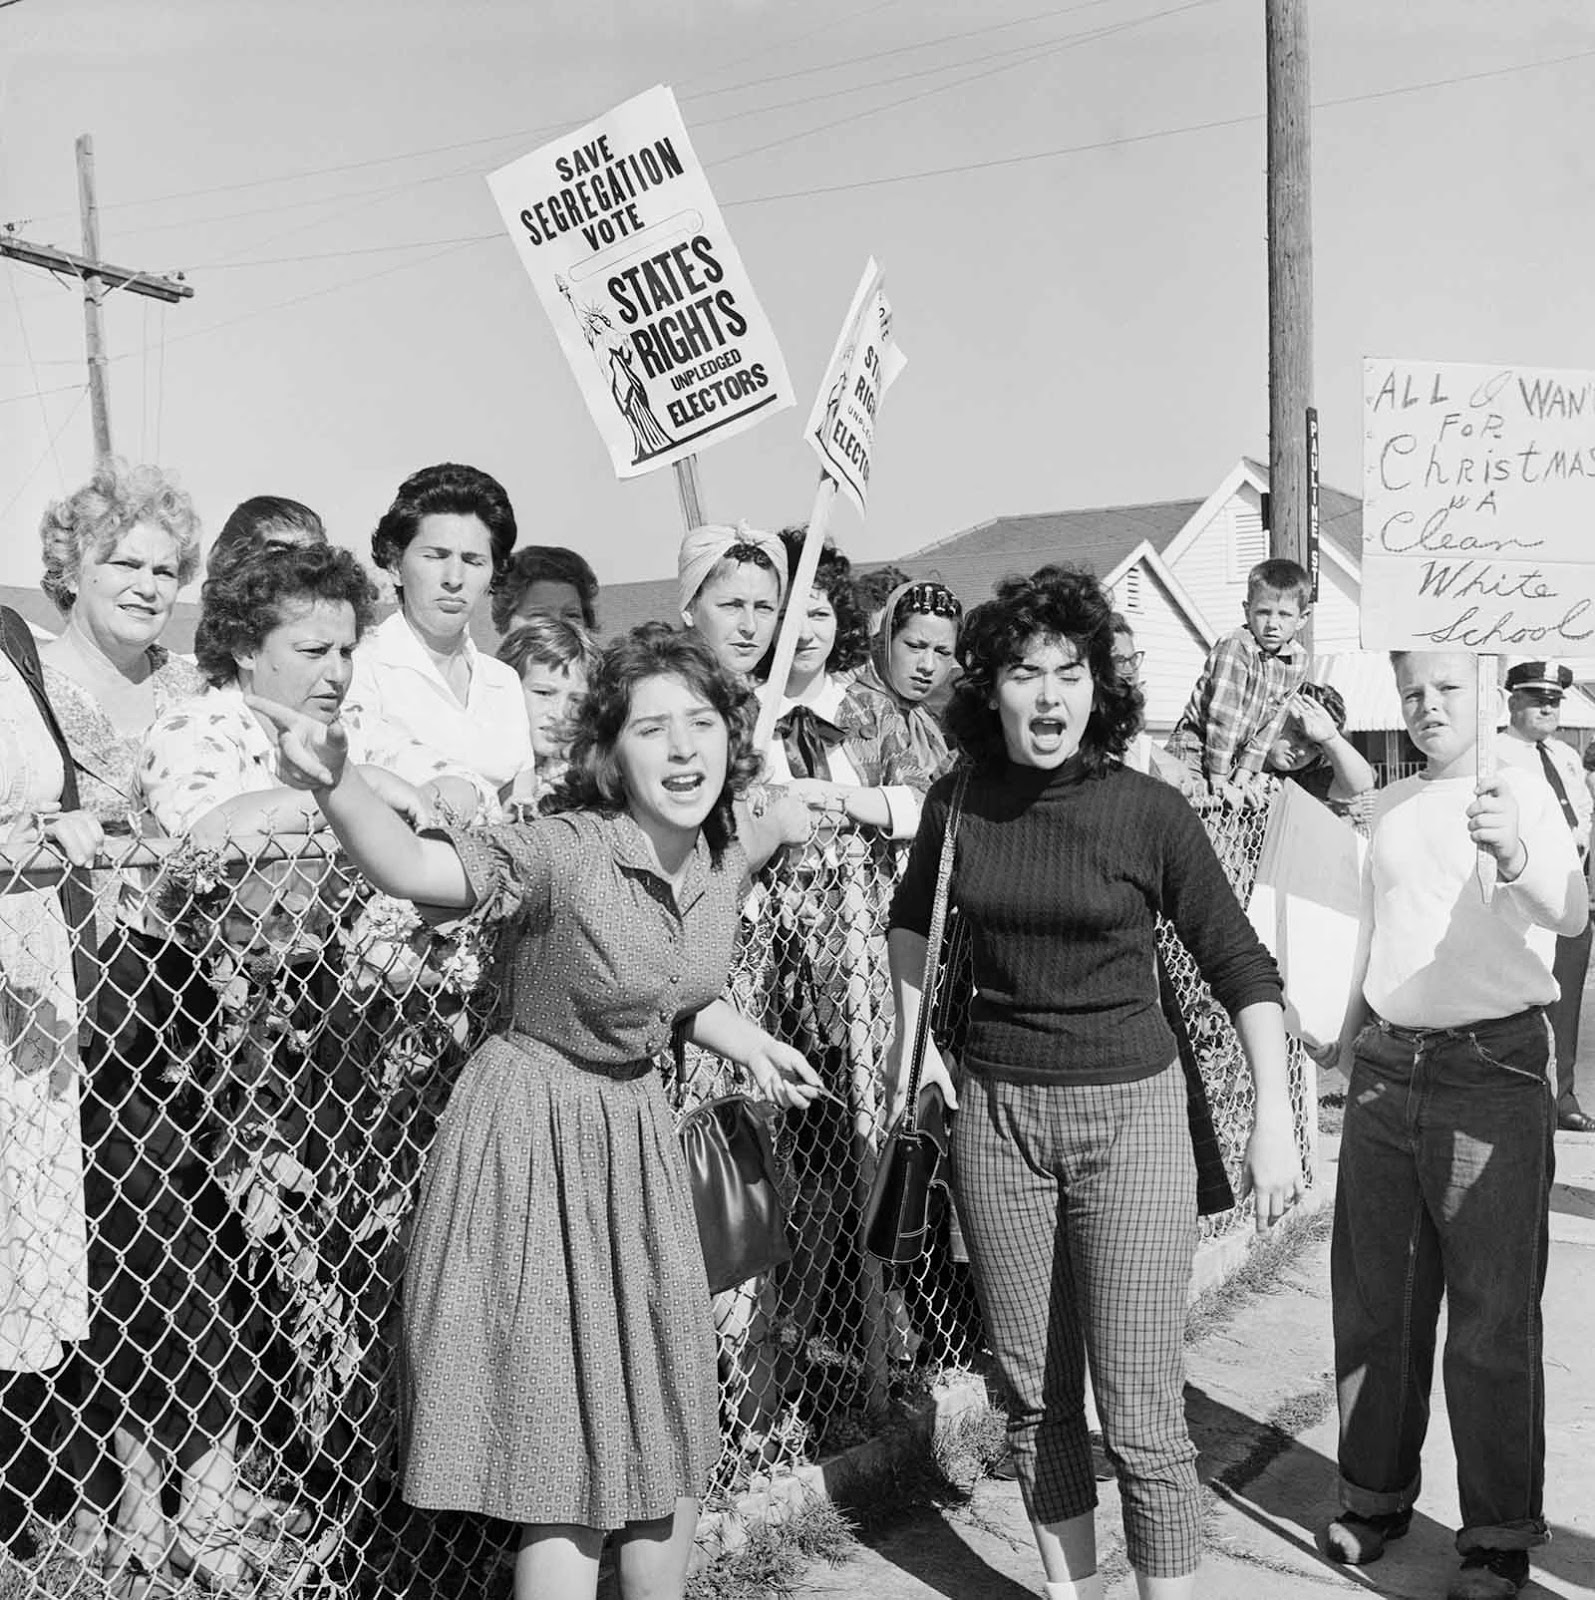 Women at William Franz Elementary School yell at police officers during a protest against desegregation of the school. Some carry signs stating